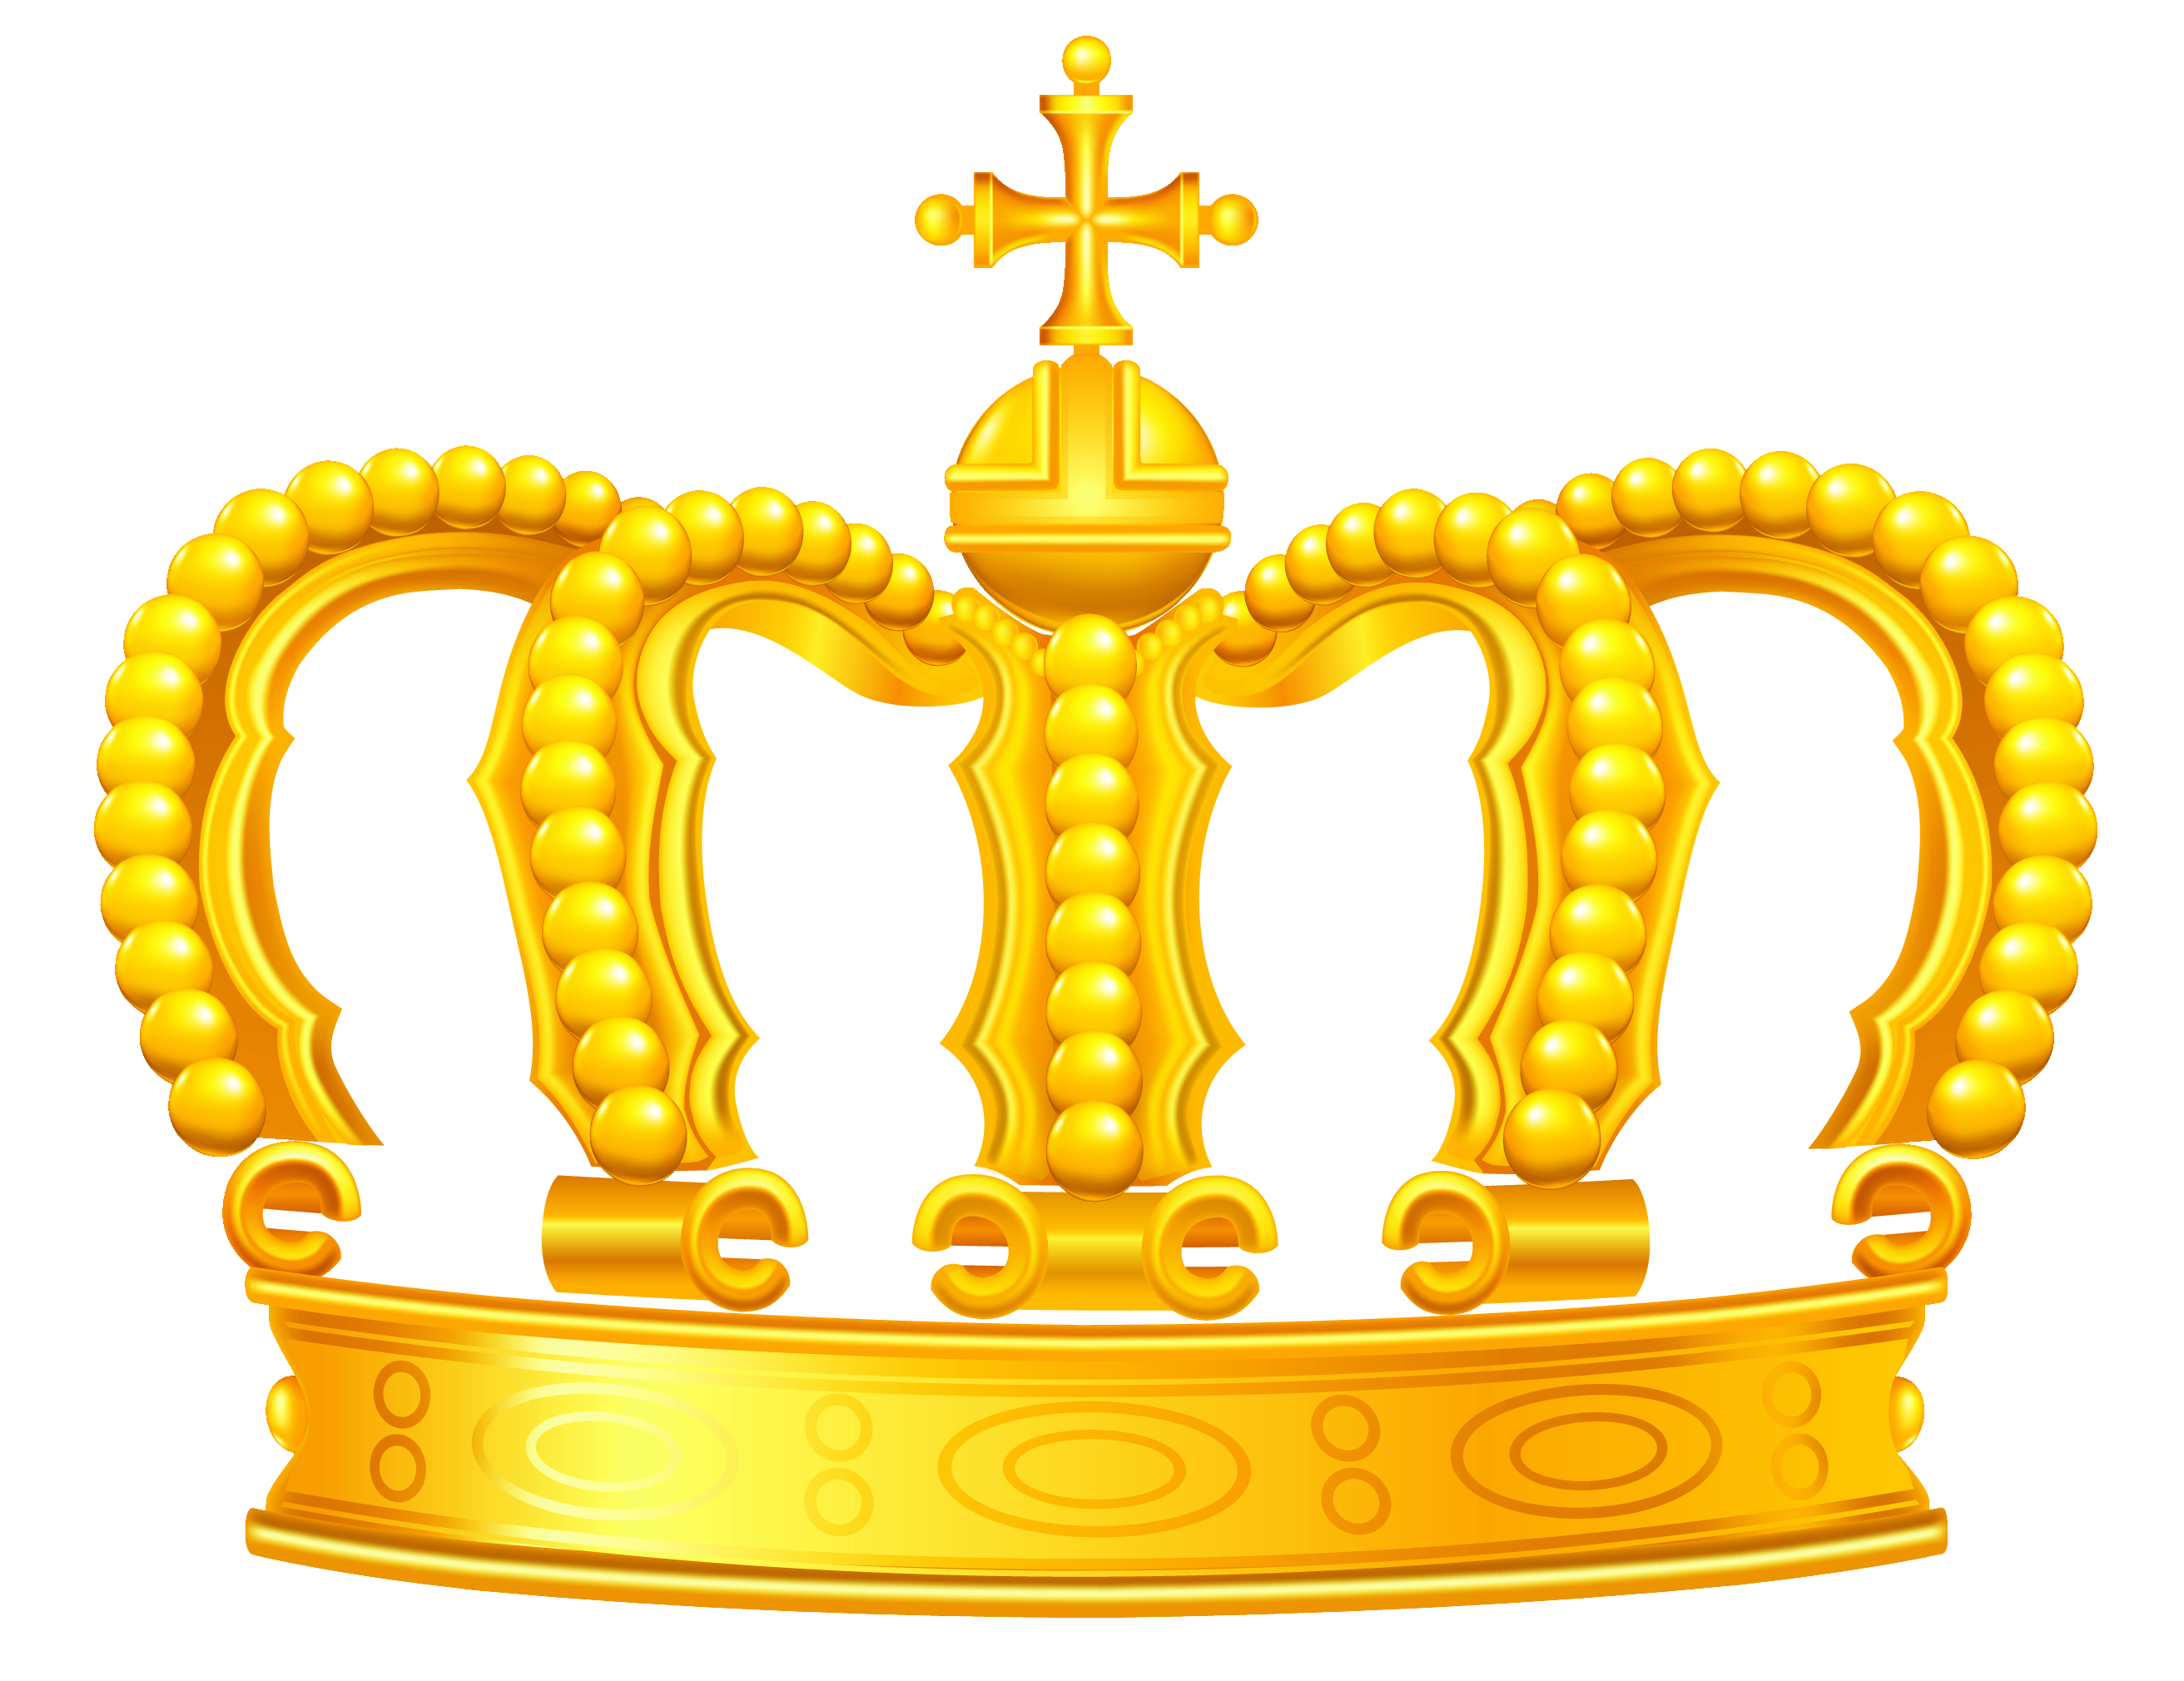 Crown clip art royalty free. Gold king clipart